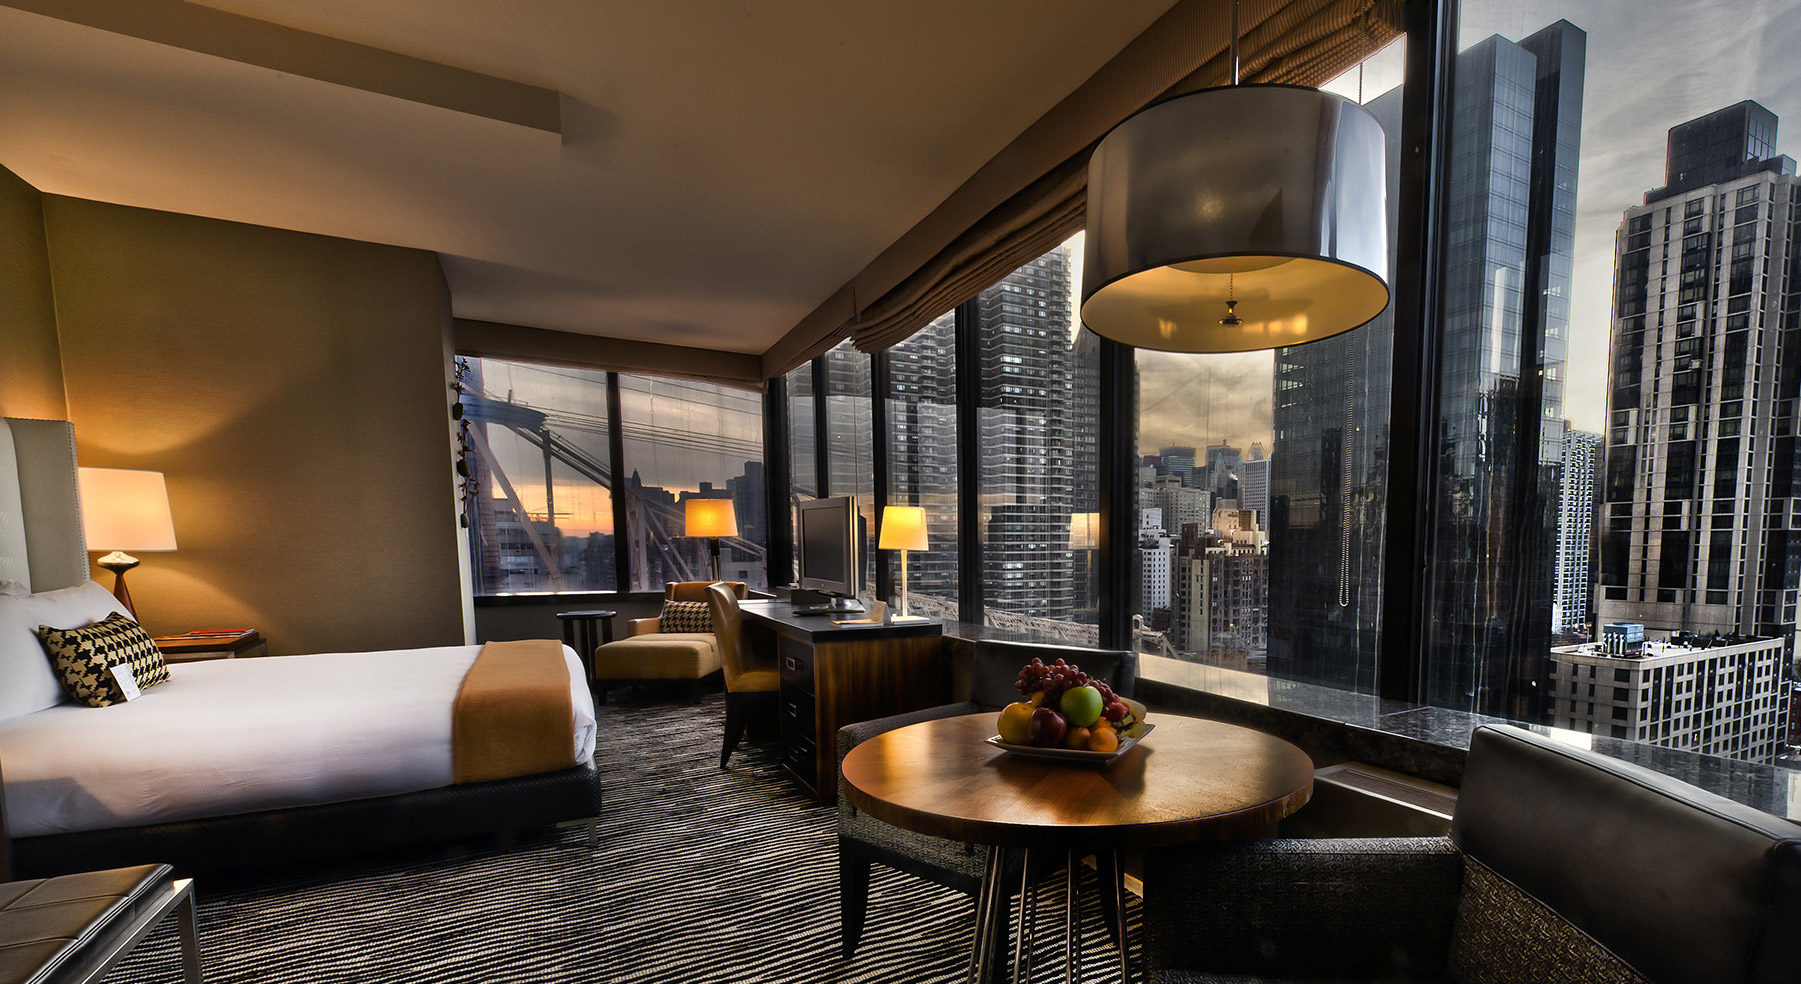 Best new york hotels for the best price for New york hotels